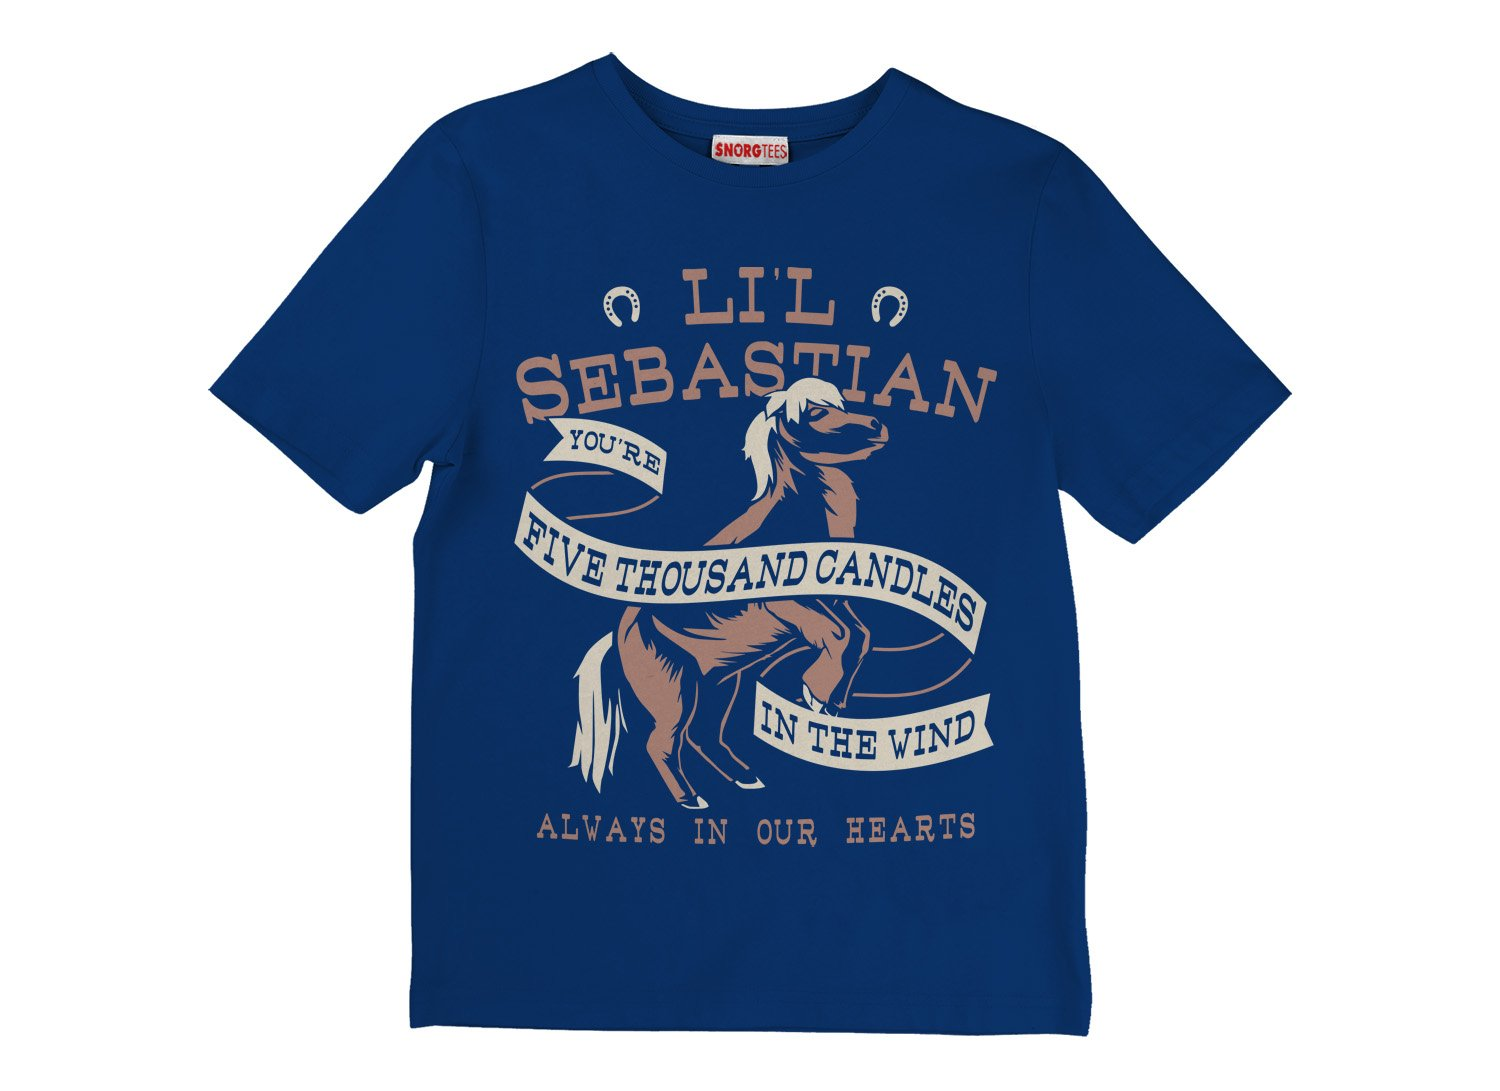 Li'l Sebastian on Kids T-Shirt